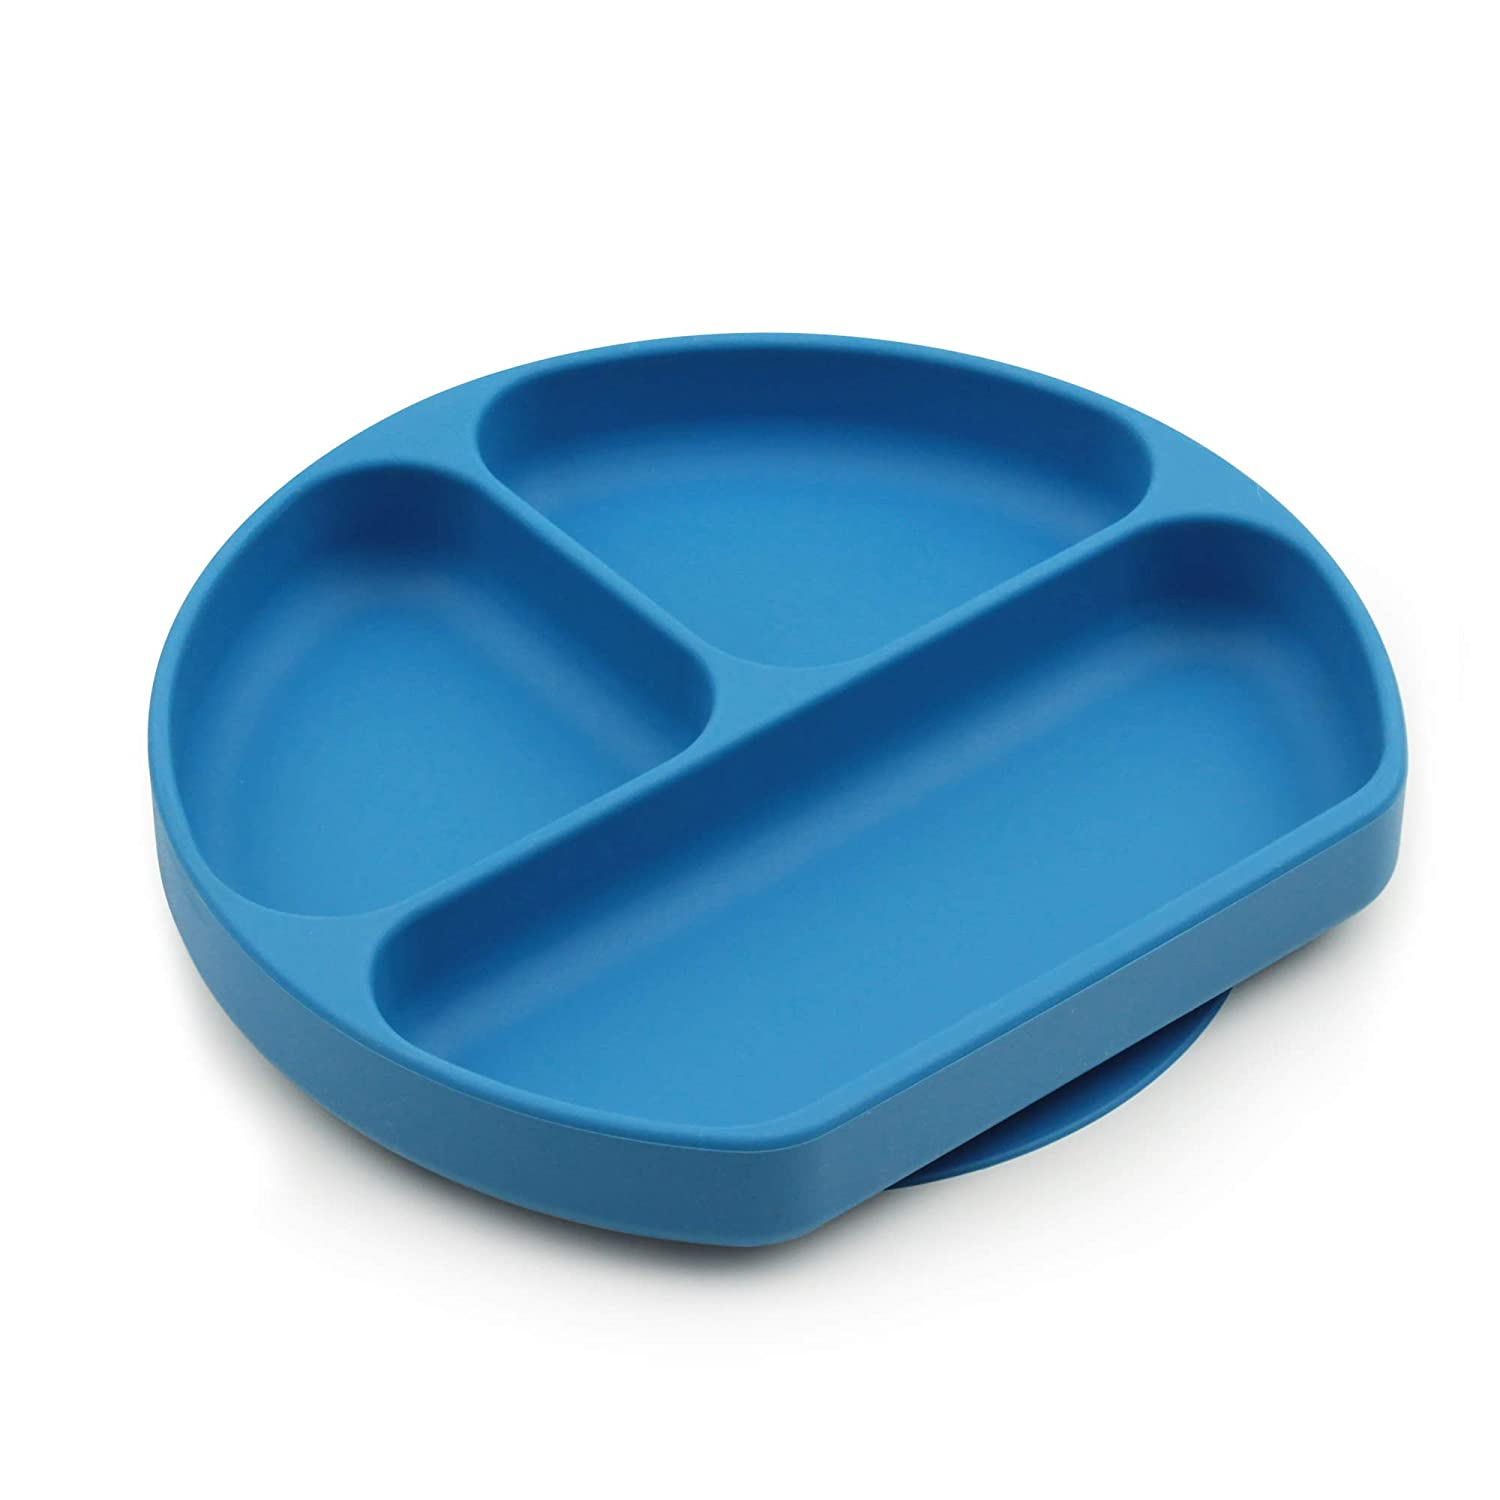 Bumkins Silicone Grip Dish, Suction Plate, Divided Plate, Baby Toddler Plate, BPA Free, Microwave Dishwasher Safe – Dark Blue